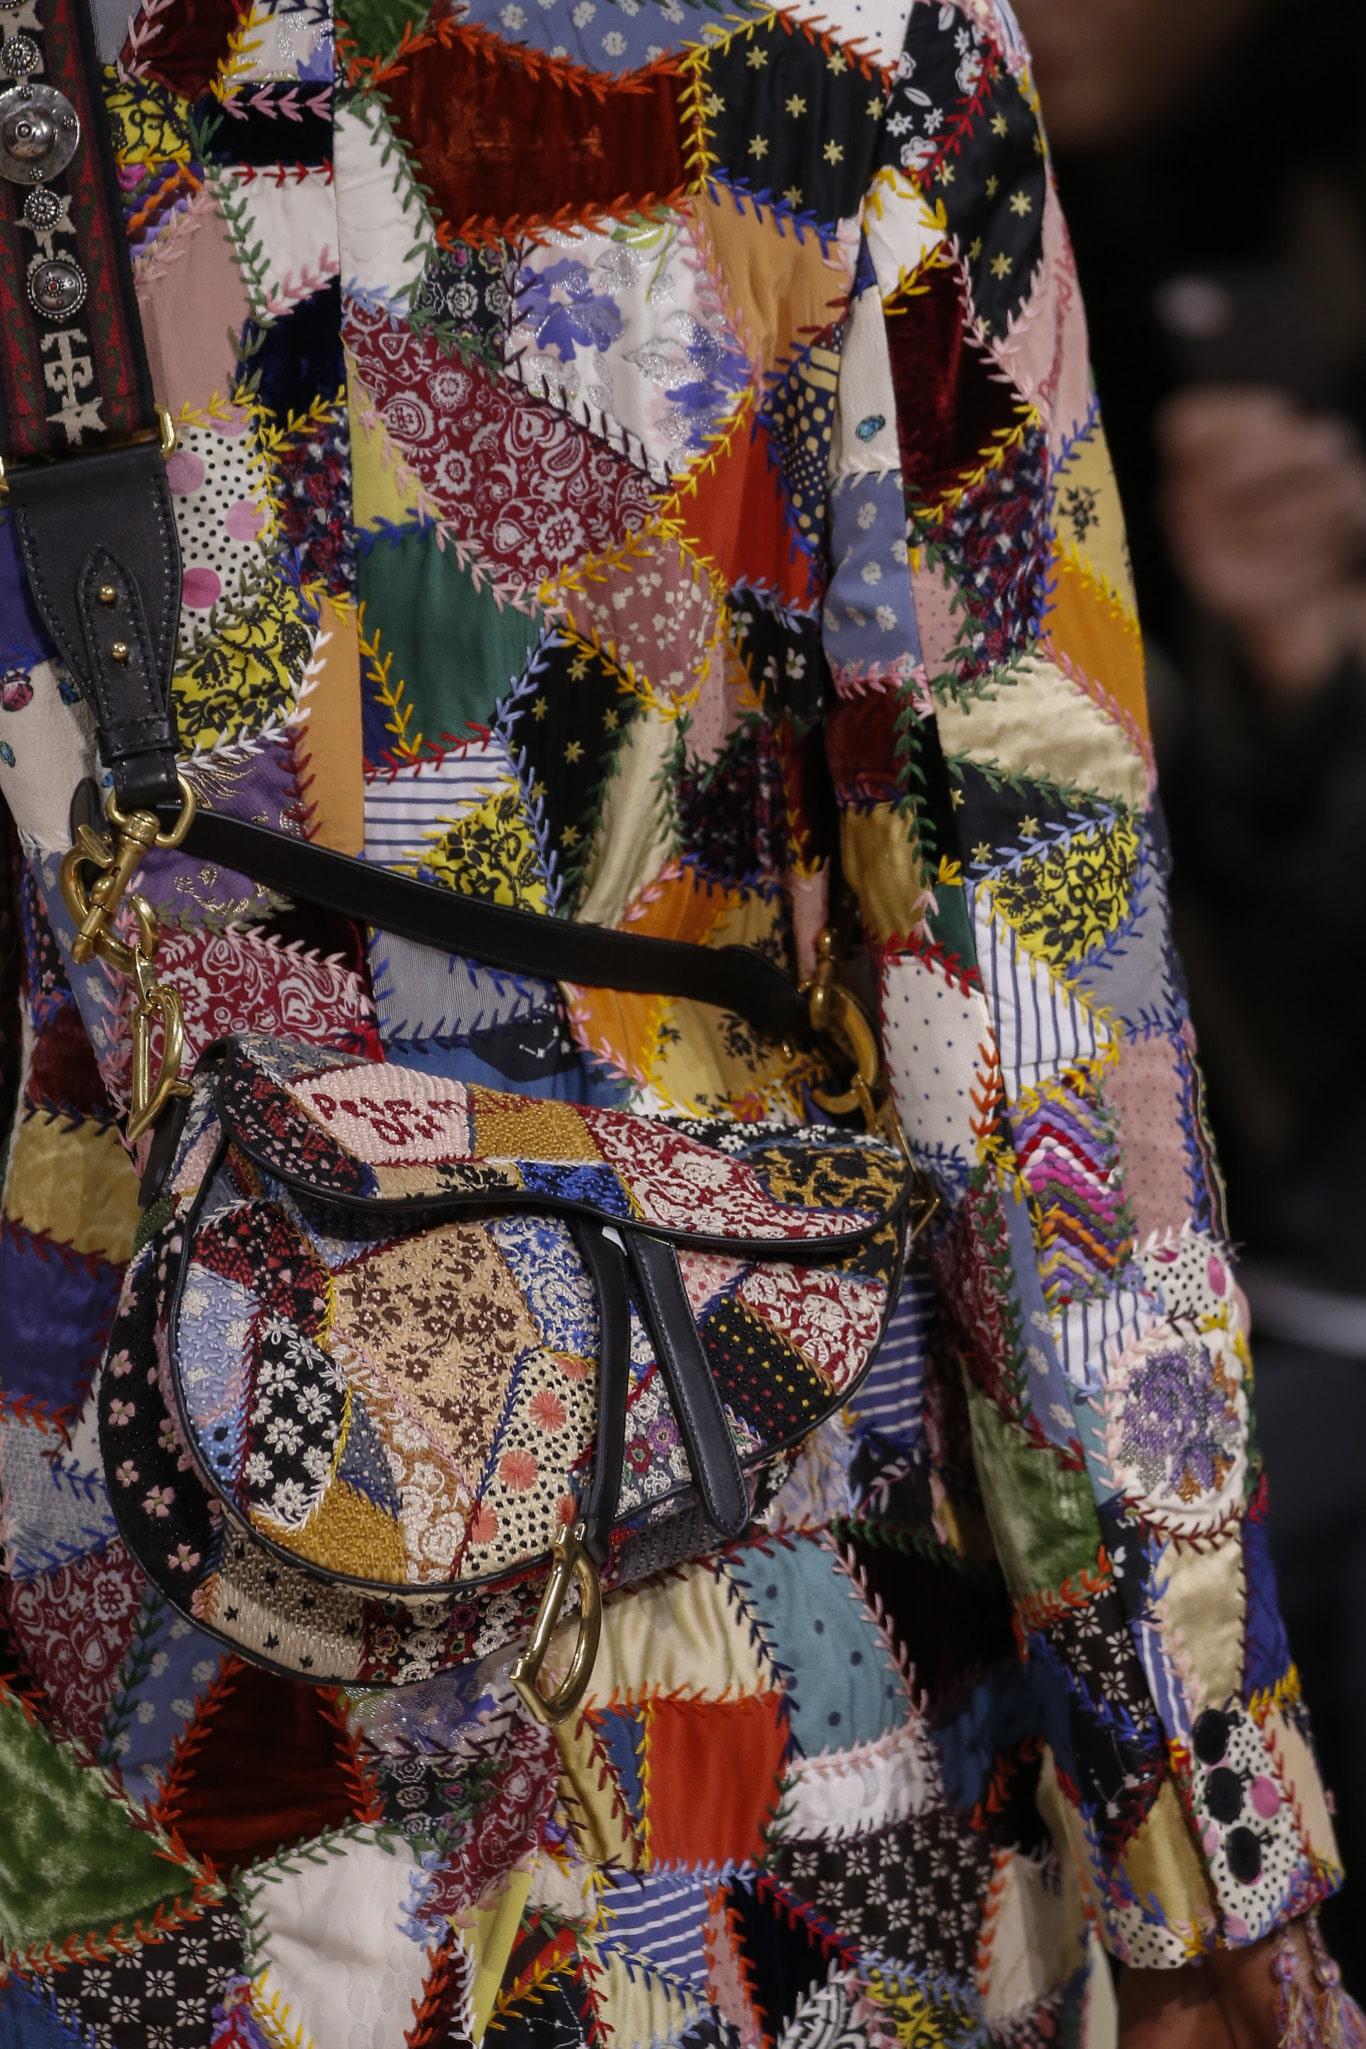 dior fall  winter 2018 runway bag collection featuring saddle bags